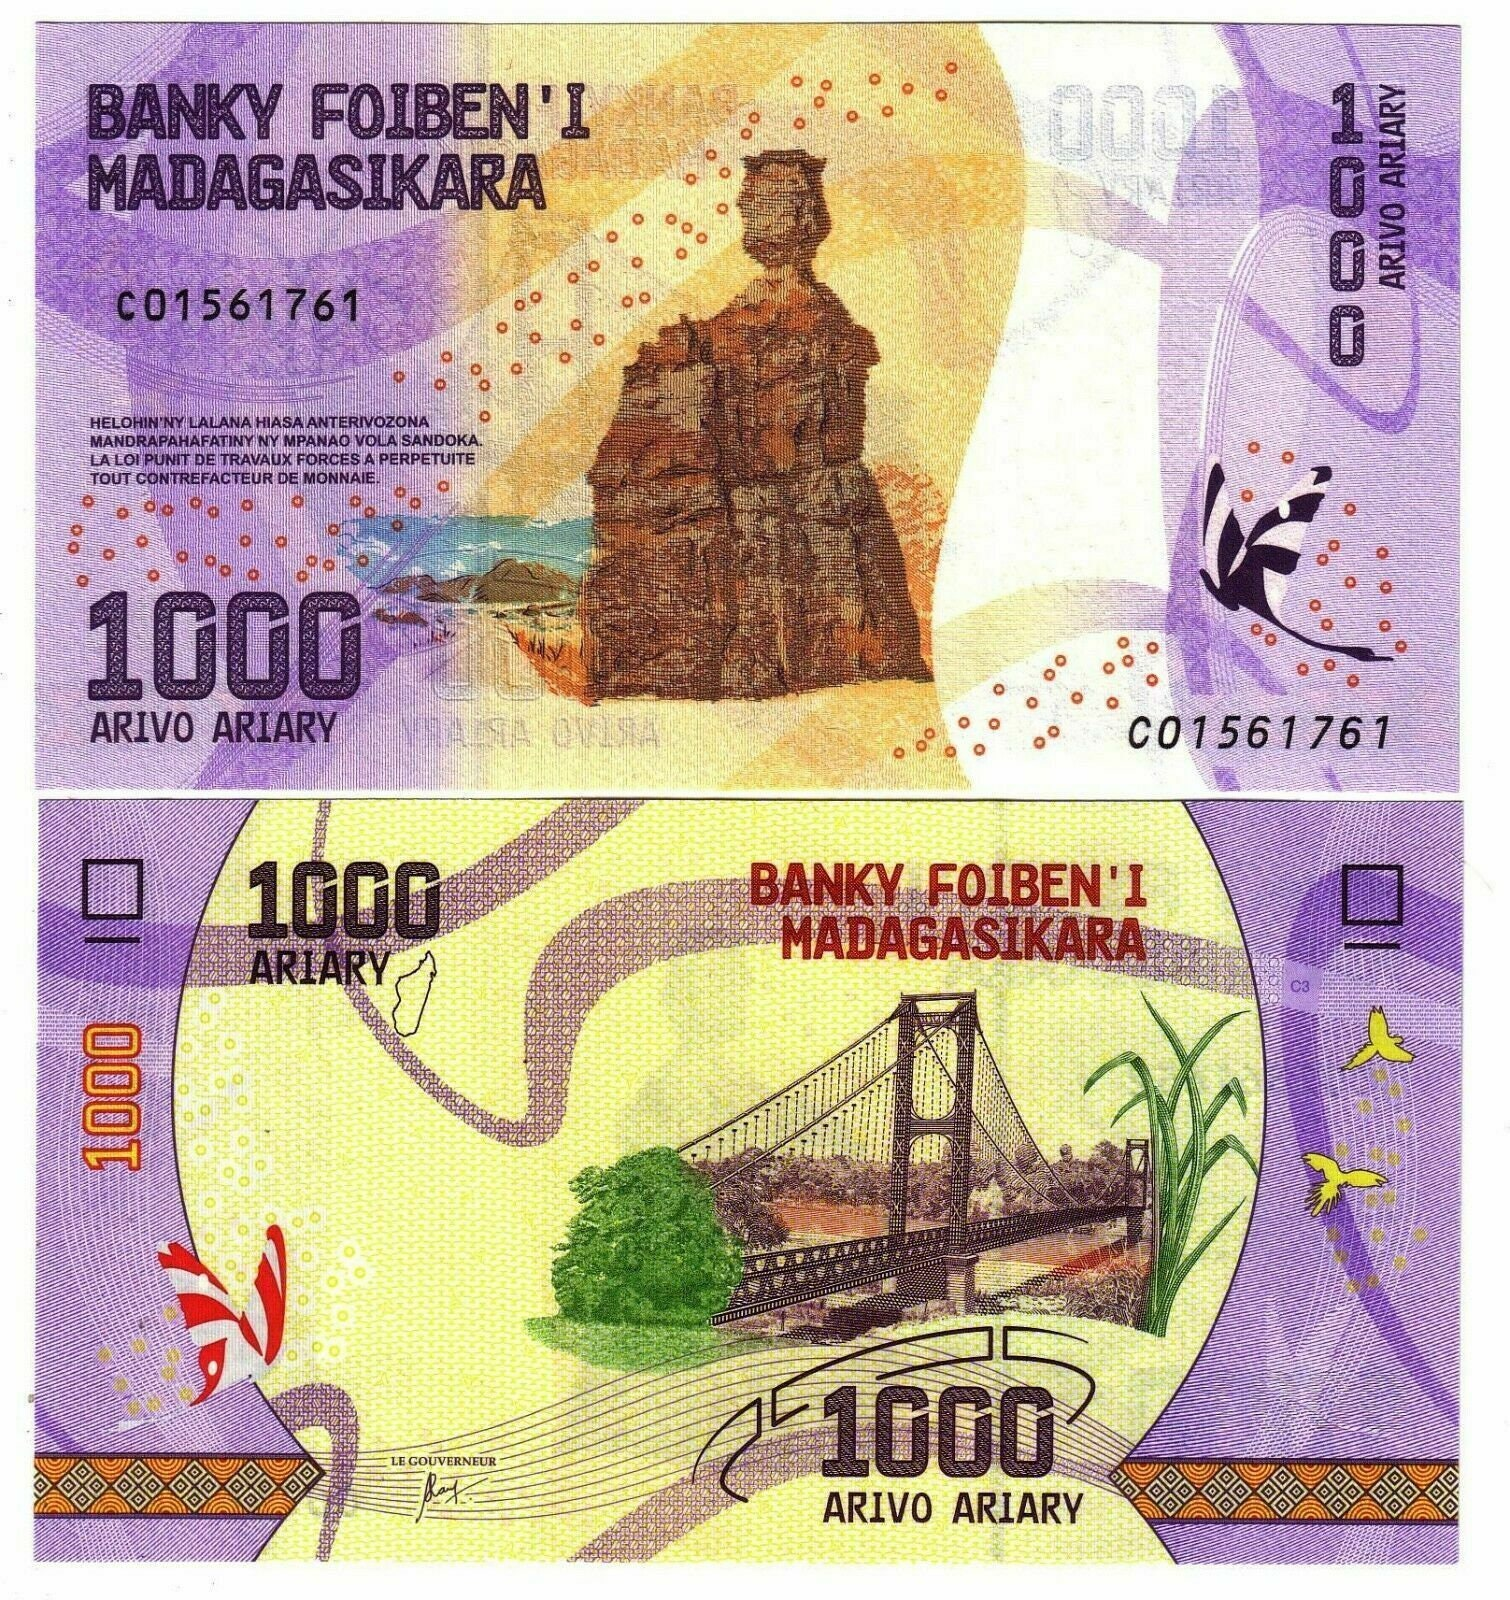 Madagascar Banknote 500 Ariary Banknote from Madagascar Paper Money from Africa Bankfresh UNC.